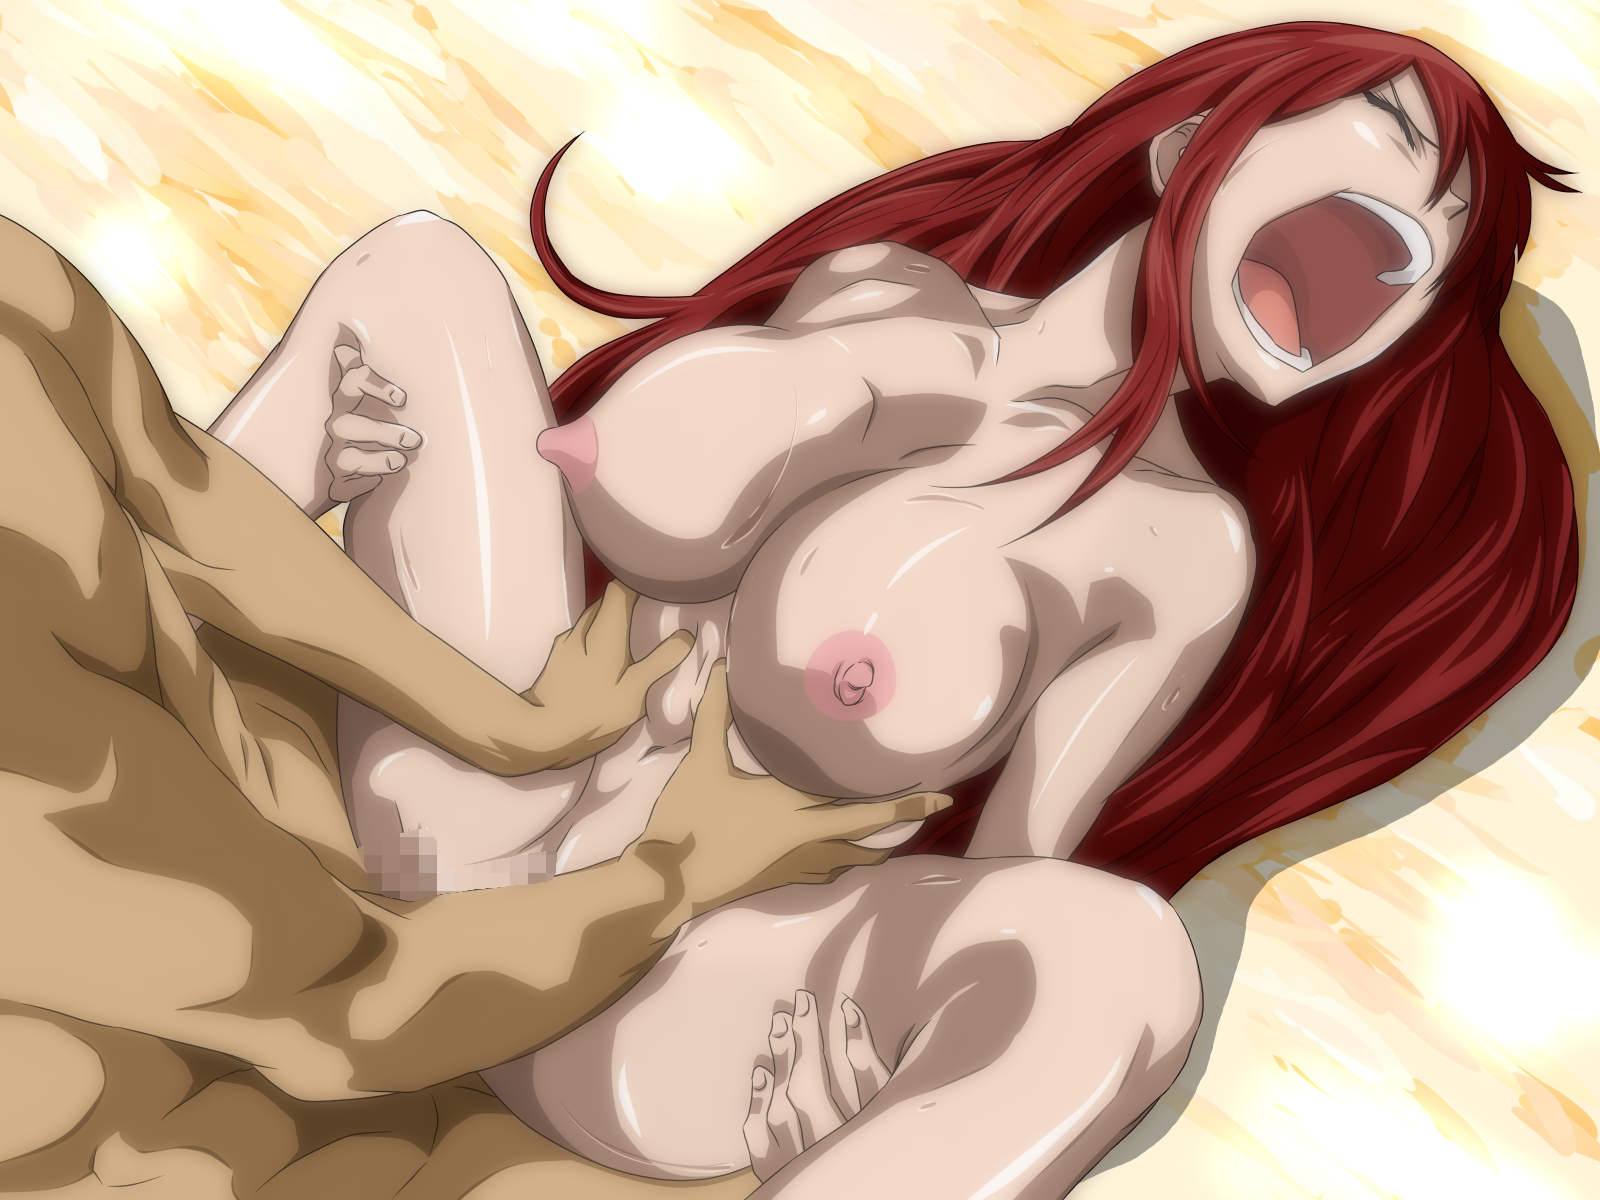 Video porno fairy tail 3d porno slut